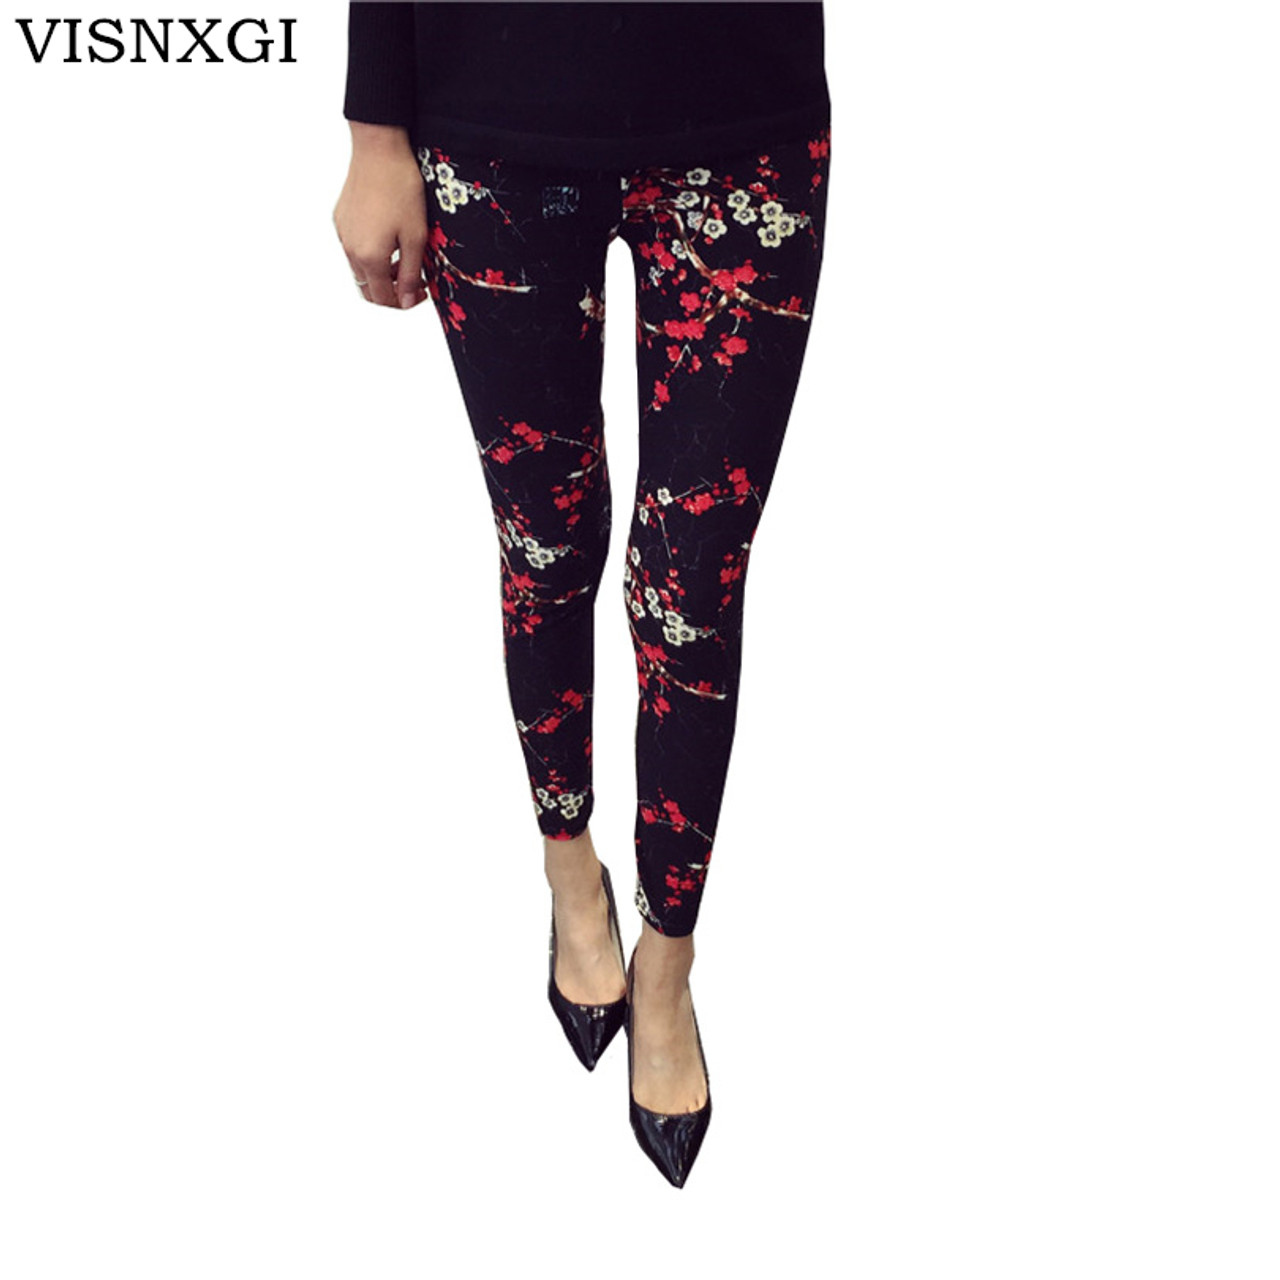 5d896f57a9f6 New 2018 Print Flower Leggings Leggins Plus Size Legins Guitar Plaid Thin  Nine Pants Fashion Women ...